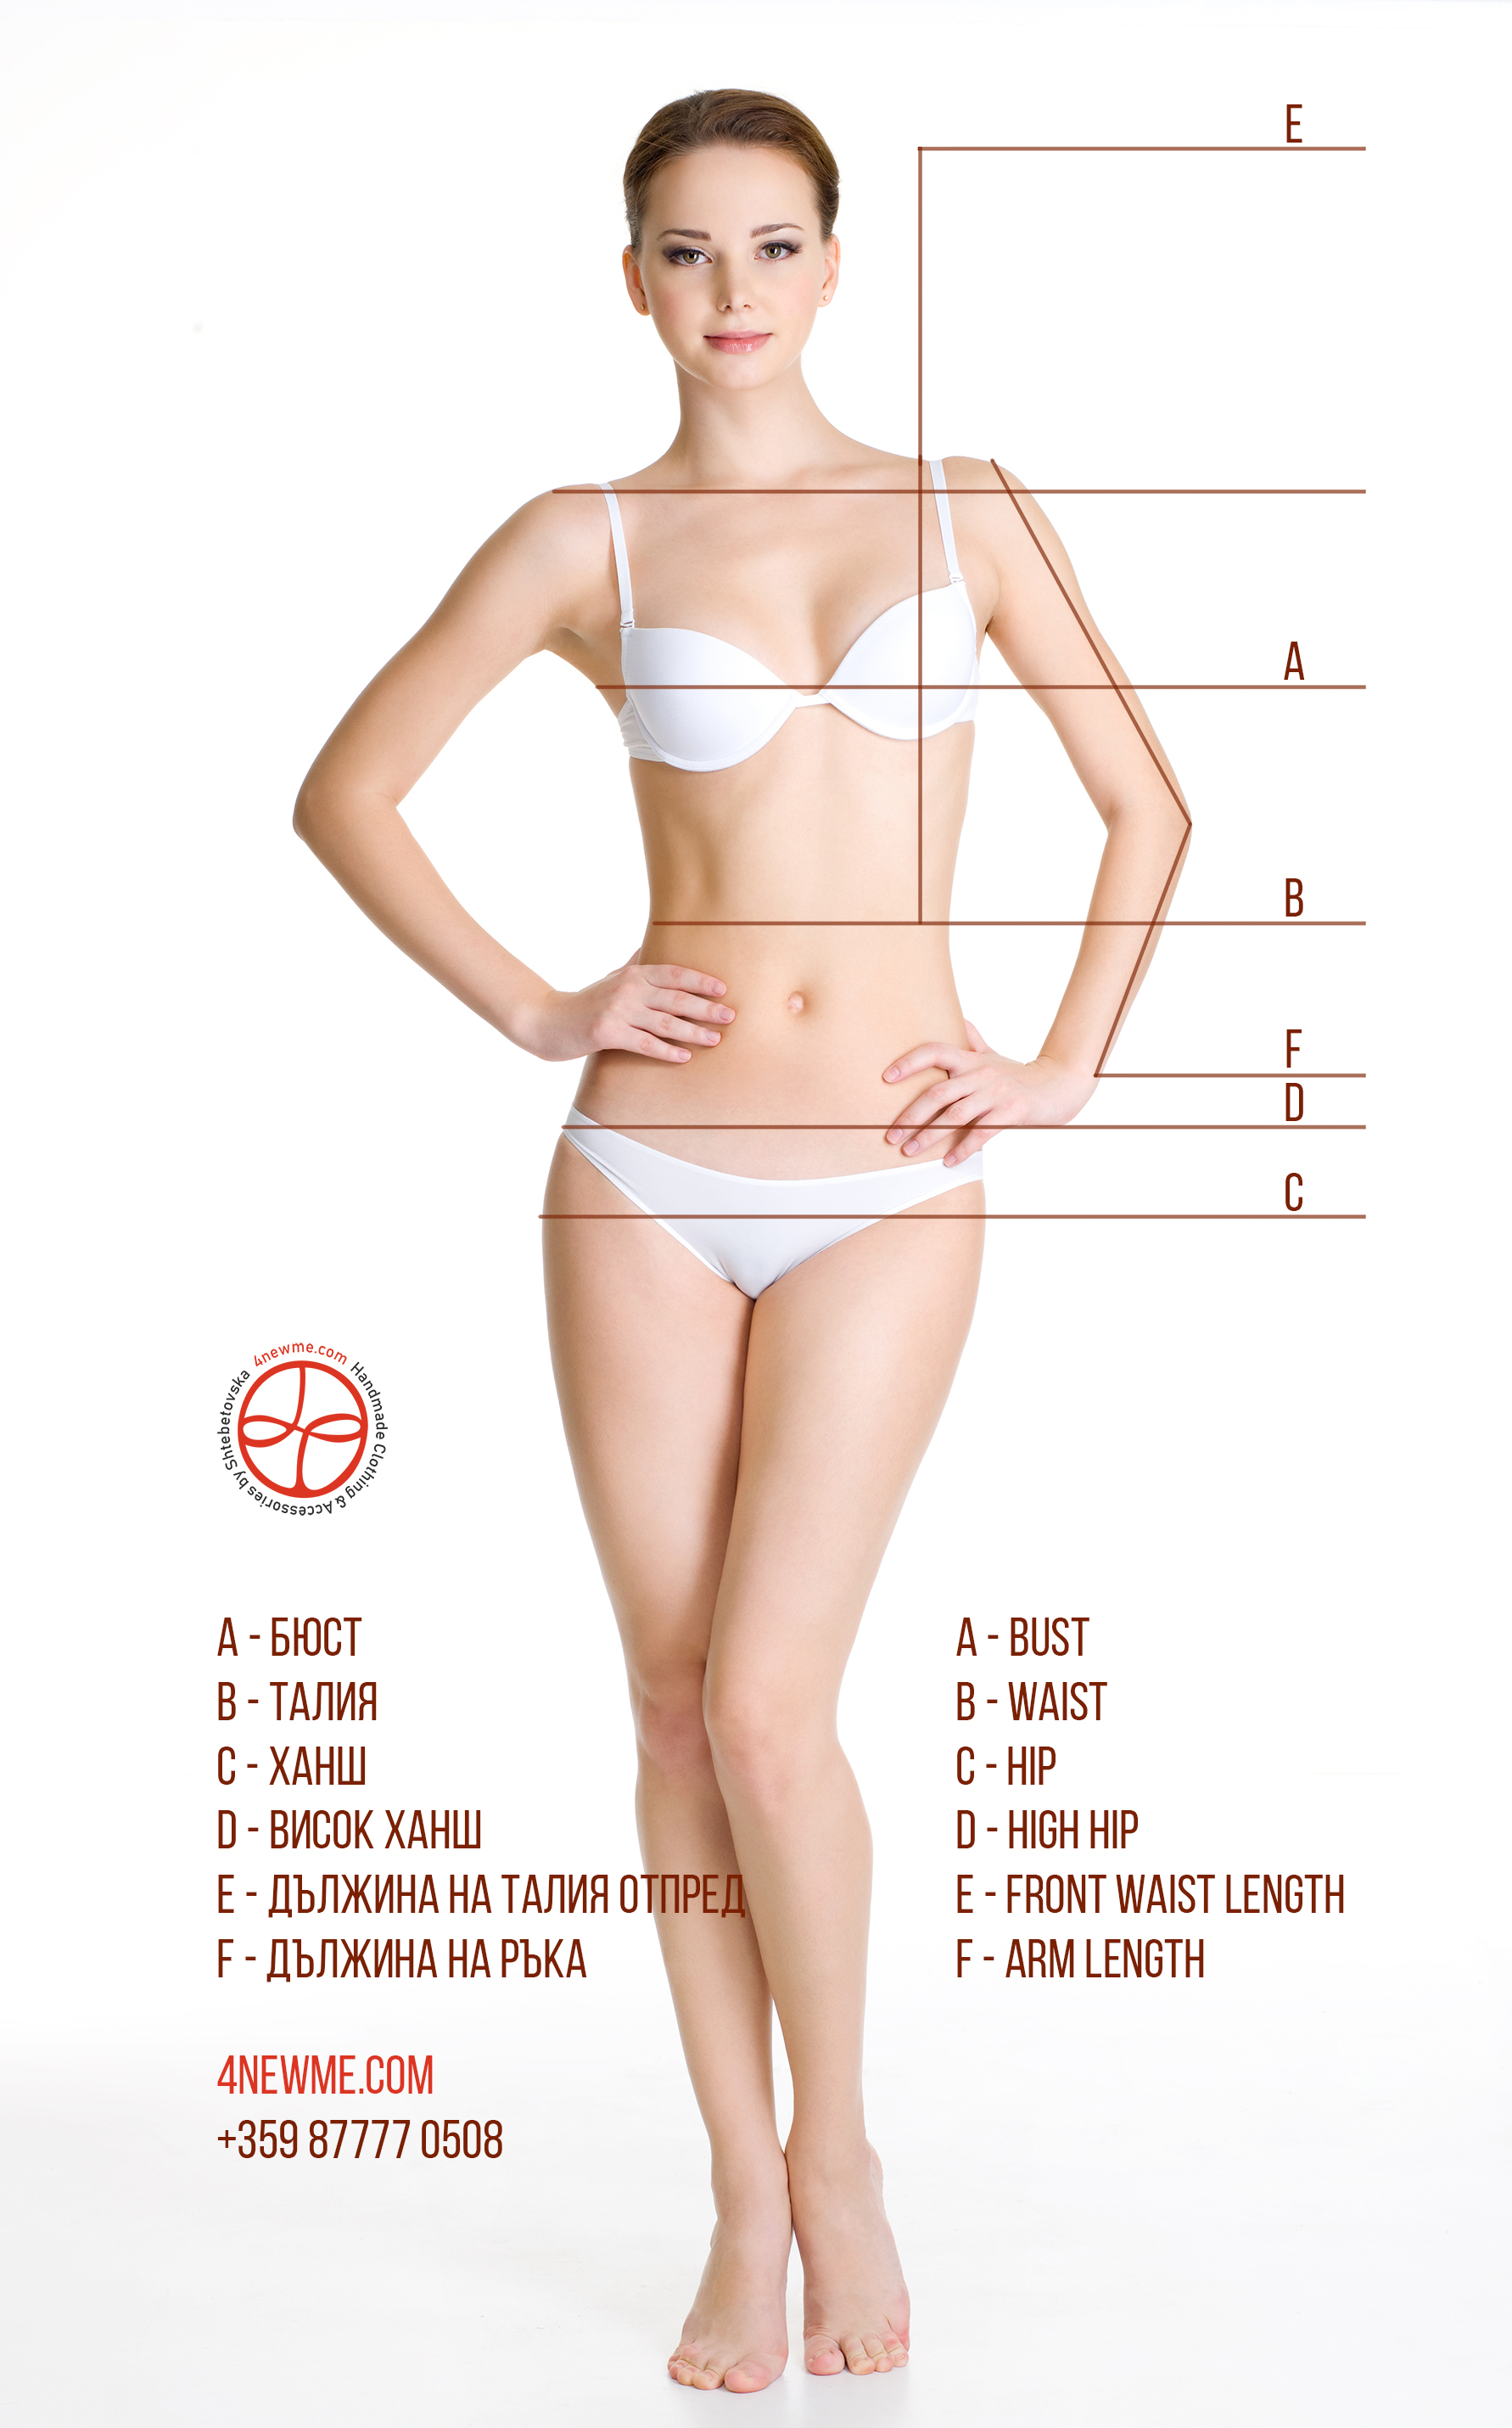 How to Get Your Body Measurements